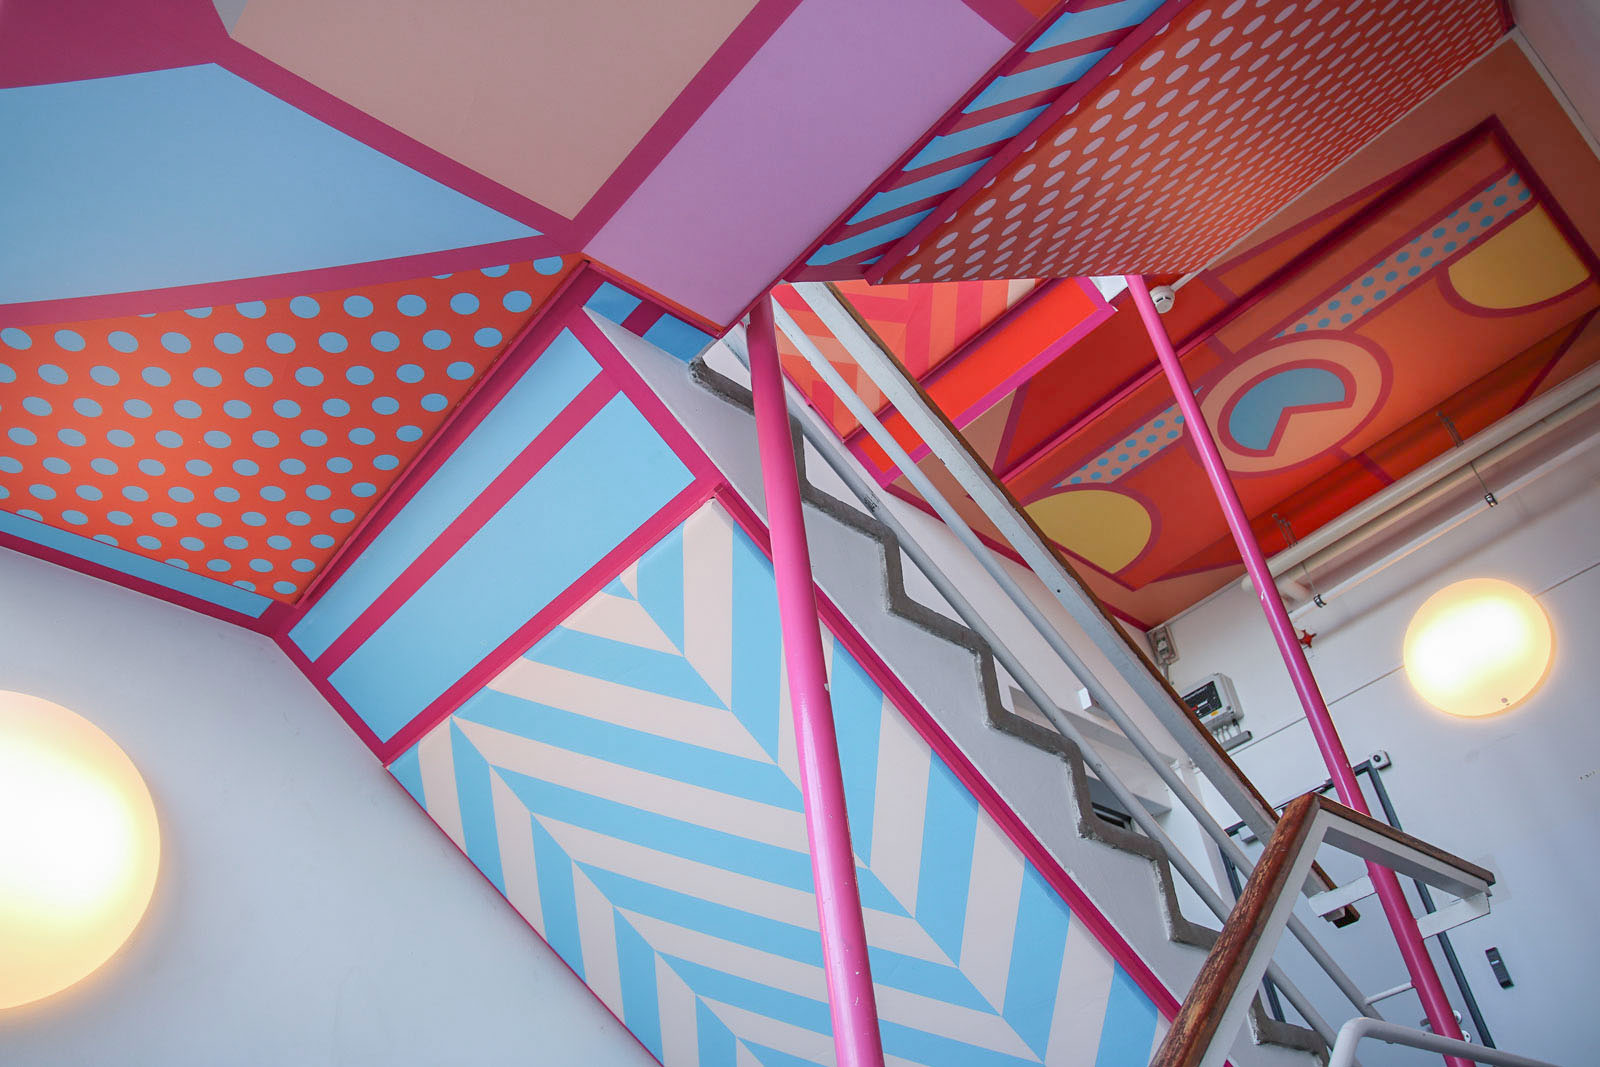 Most colorful staircase in the Netherlands